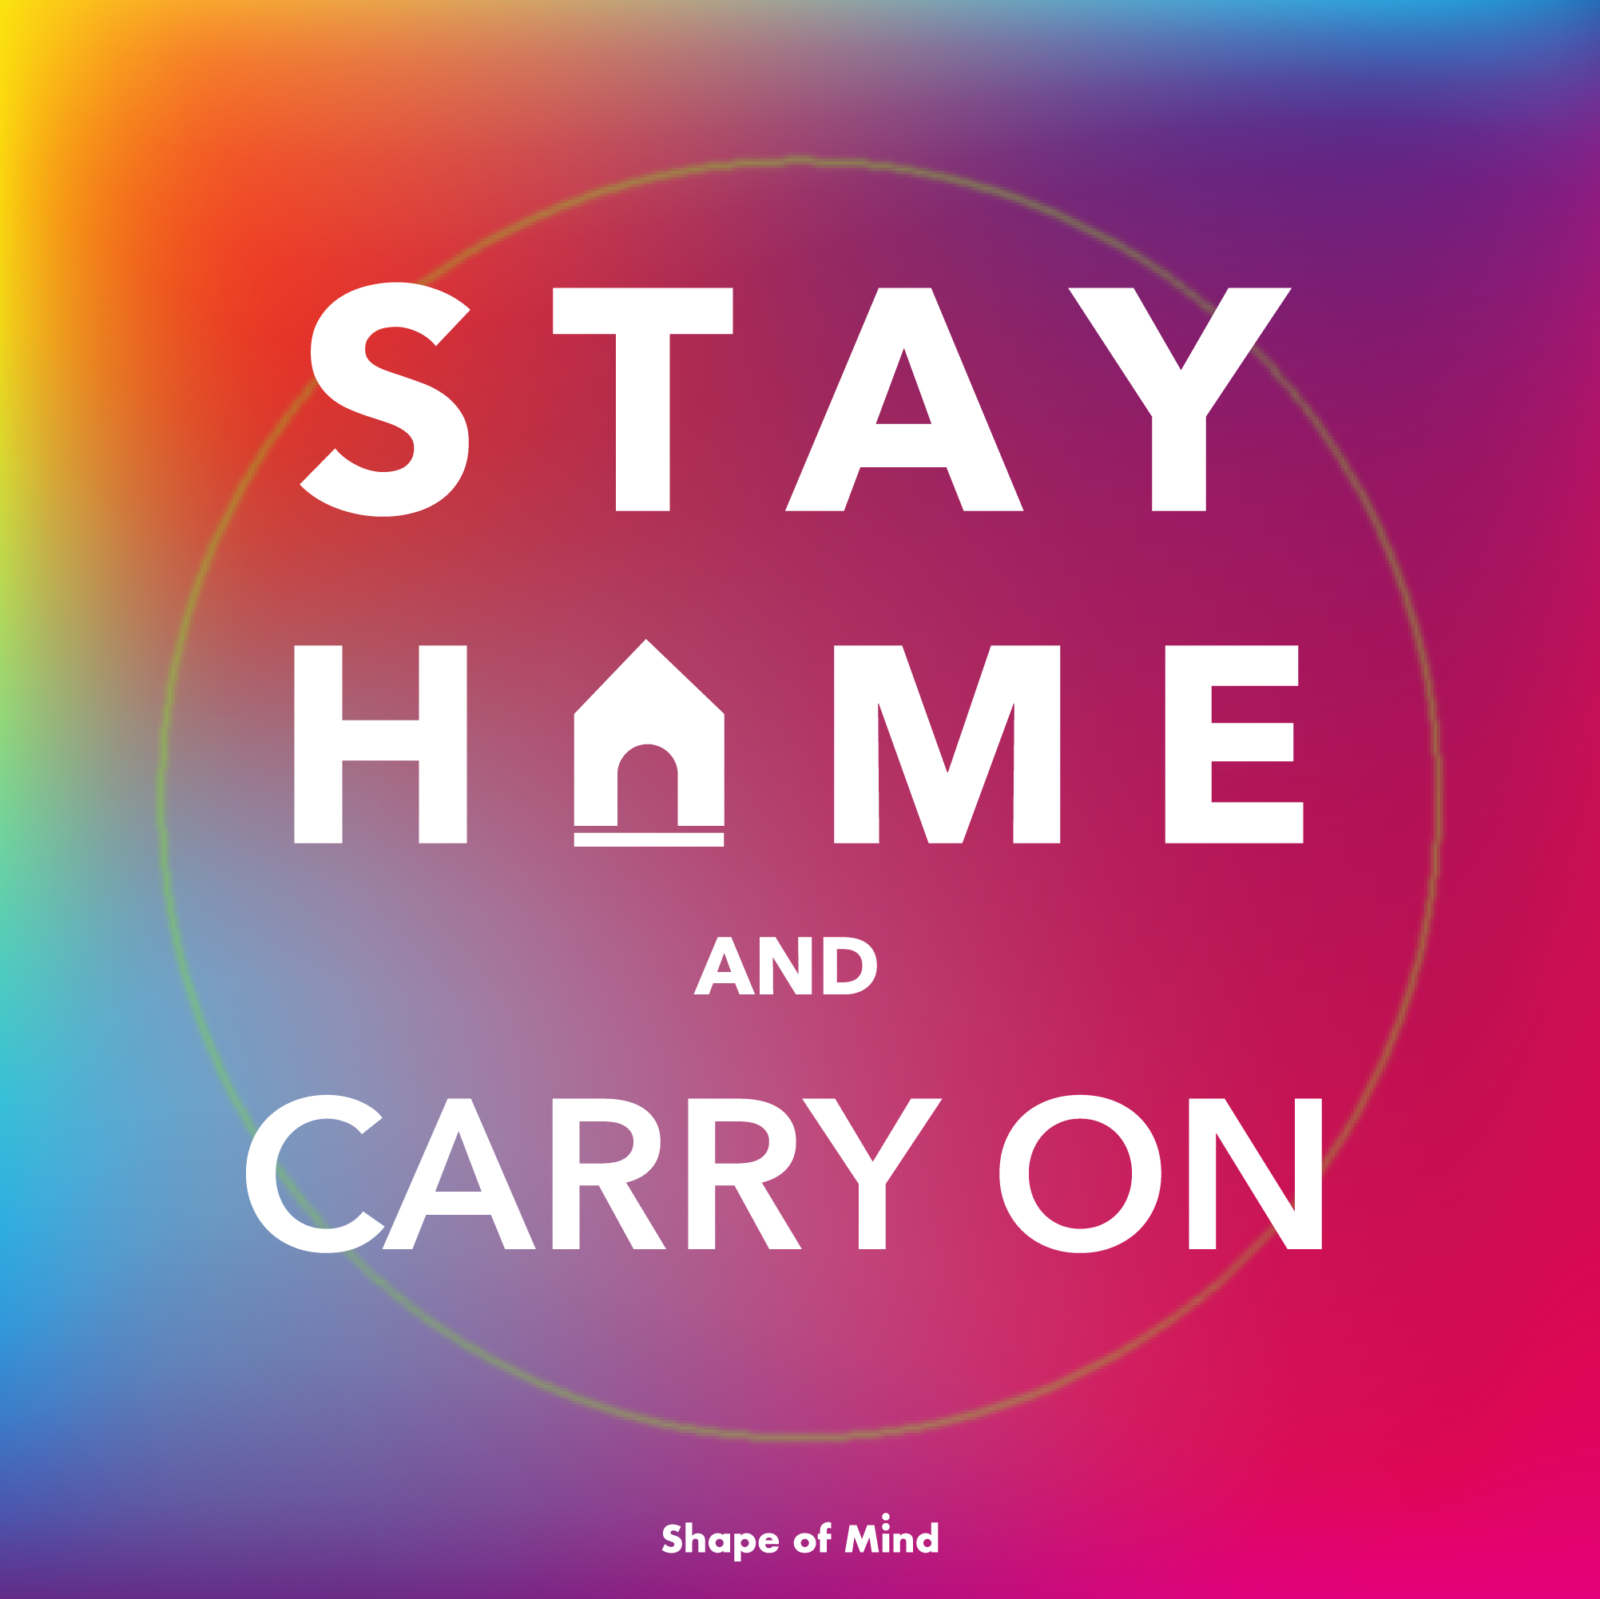 Shape of mind Stay home carry on 2020